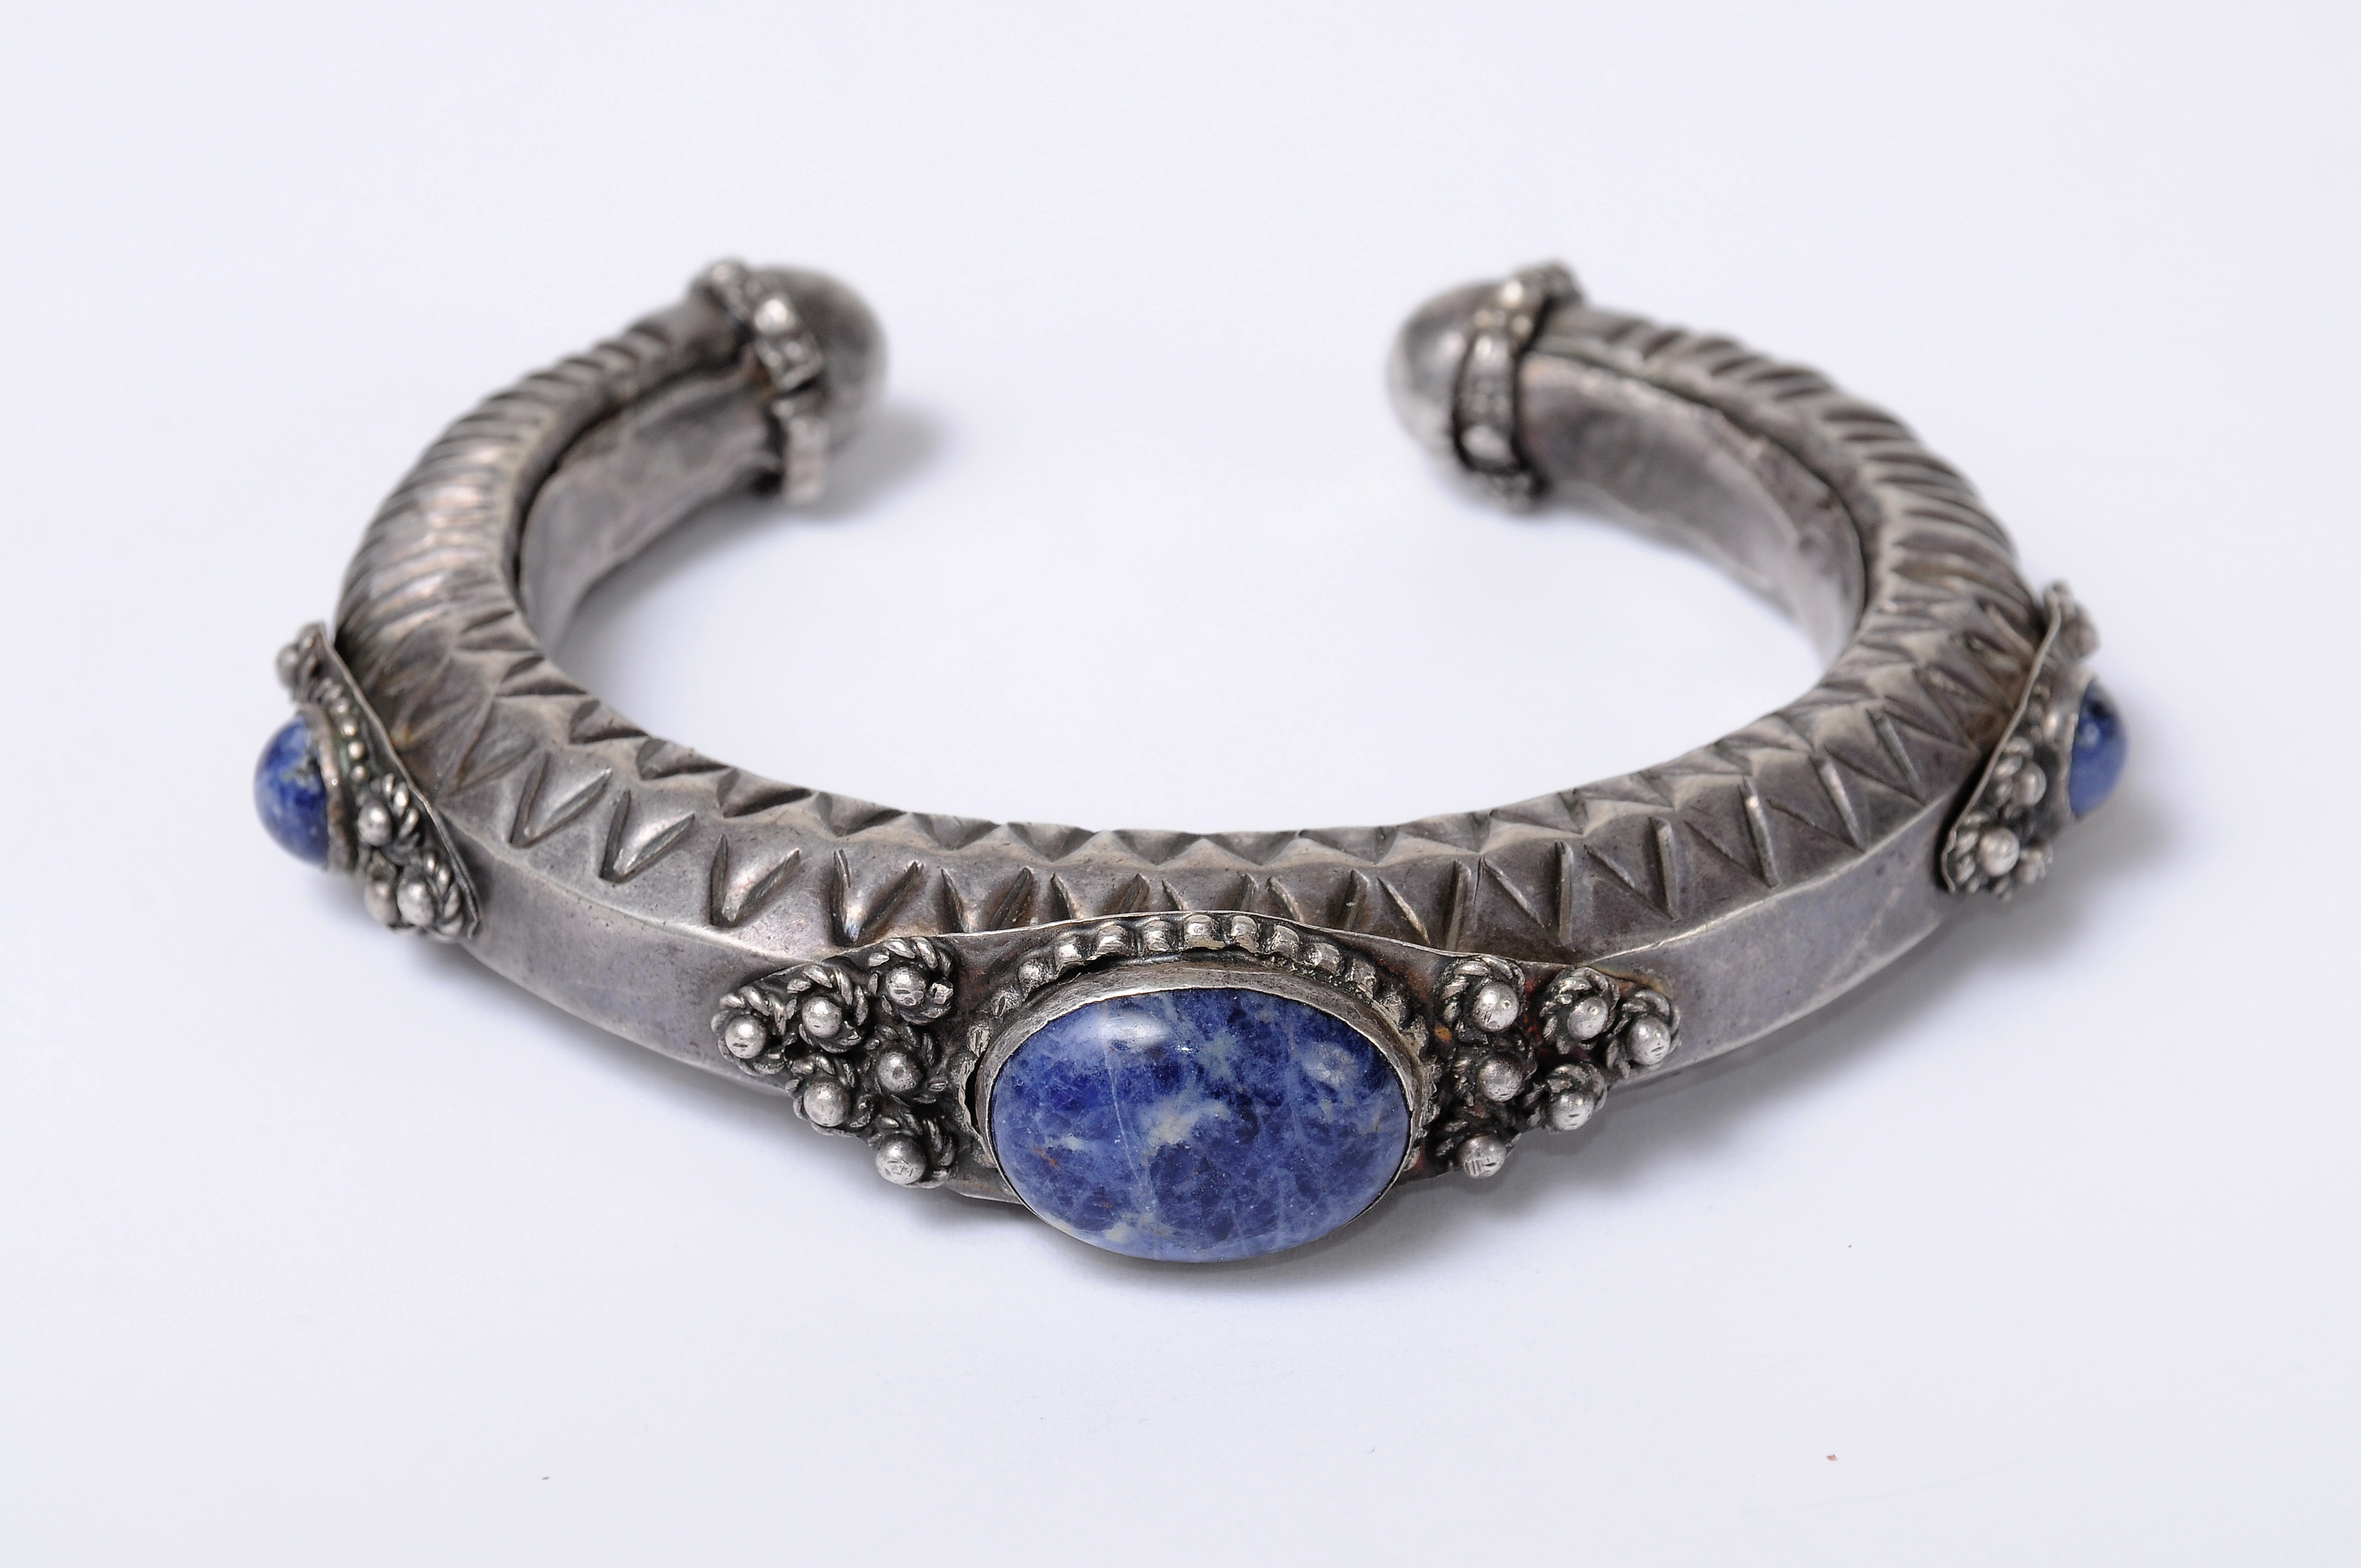 Ethnic Oriental Cuff Israel 925 Silver Bracelet set with Agate Stone